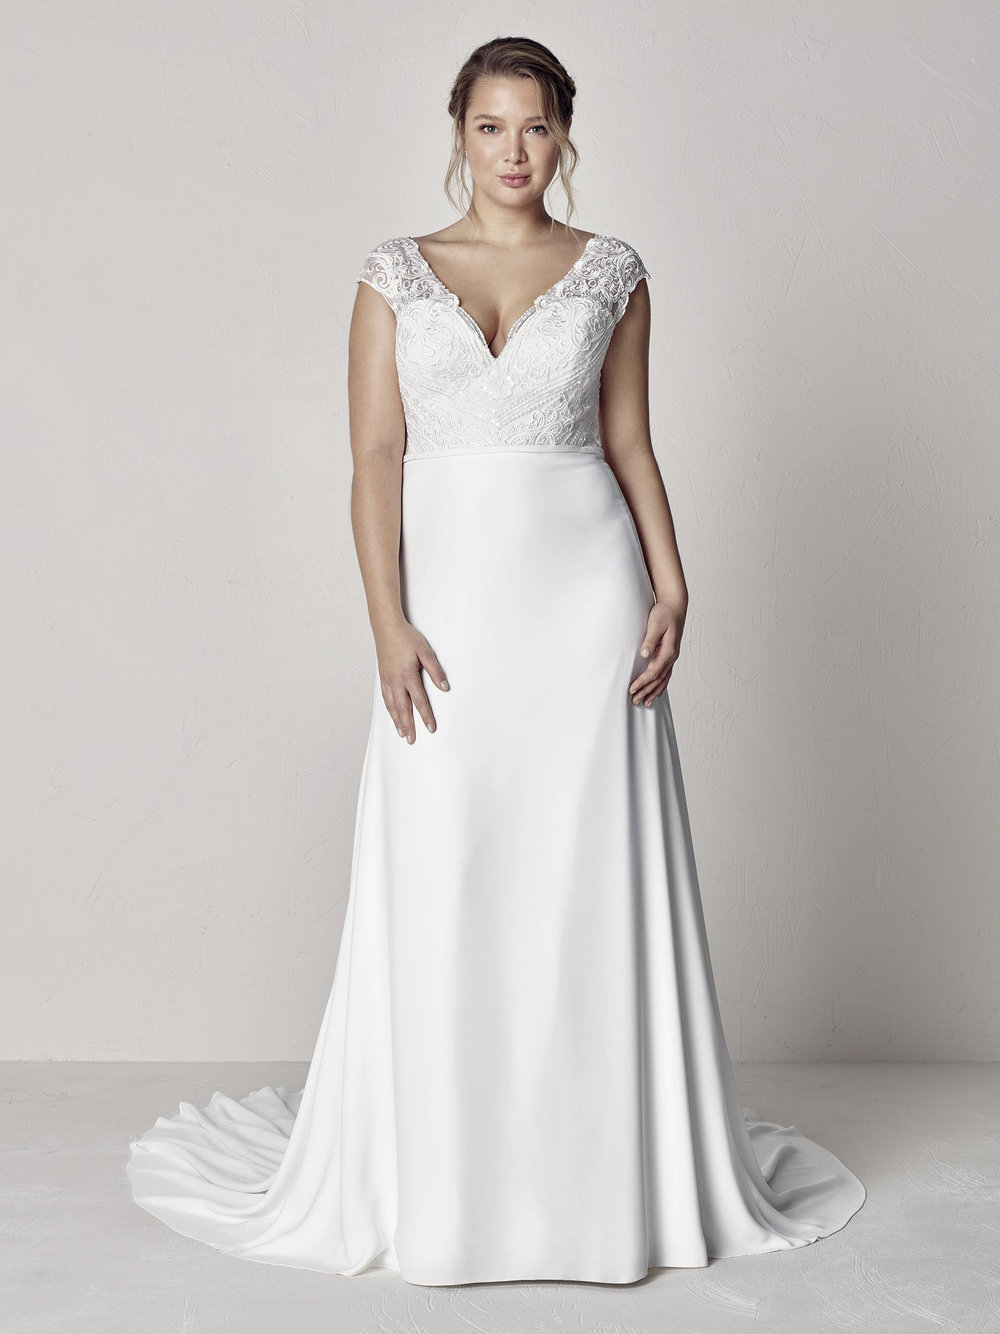 PronoviasBridal-BridesbyYoung-PlusSizeWeddingDress-Eyra.jpg